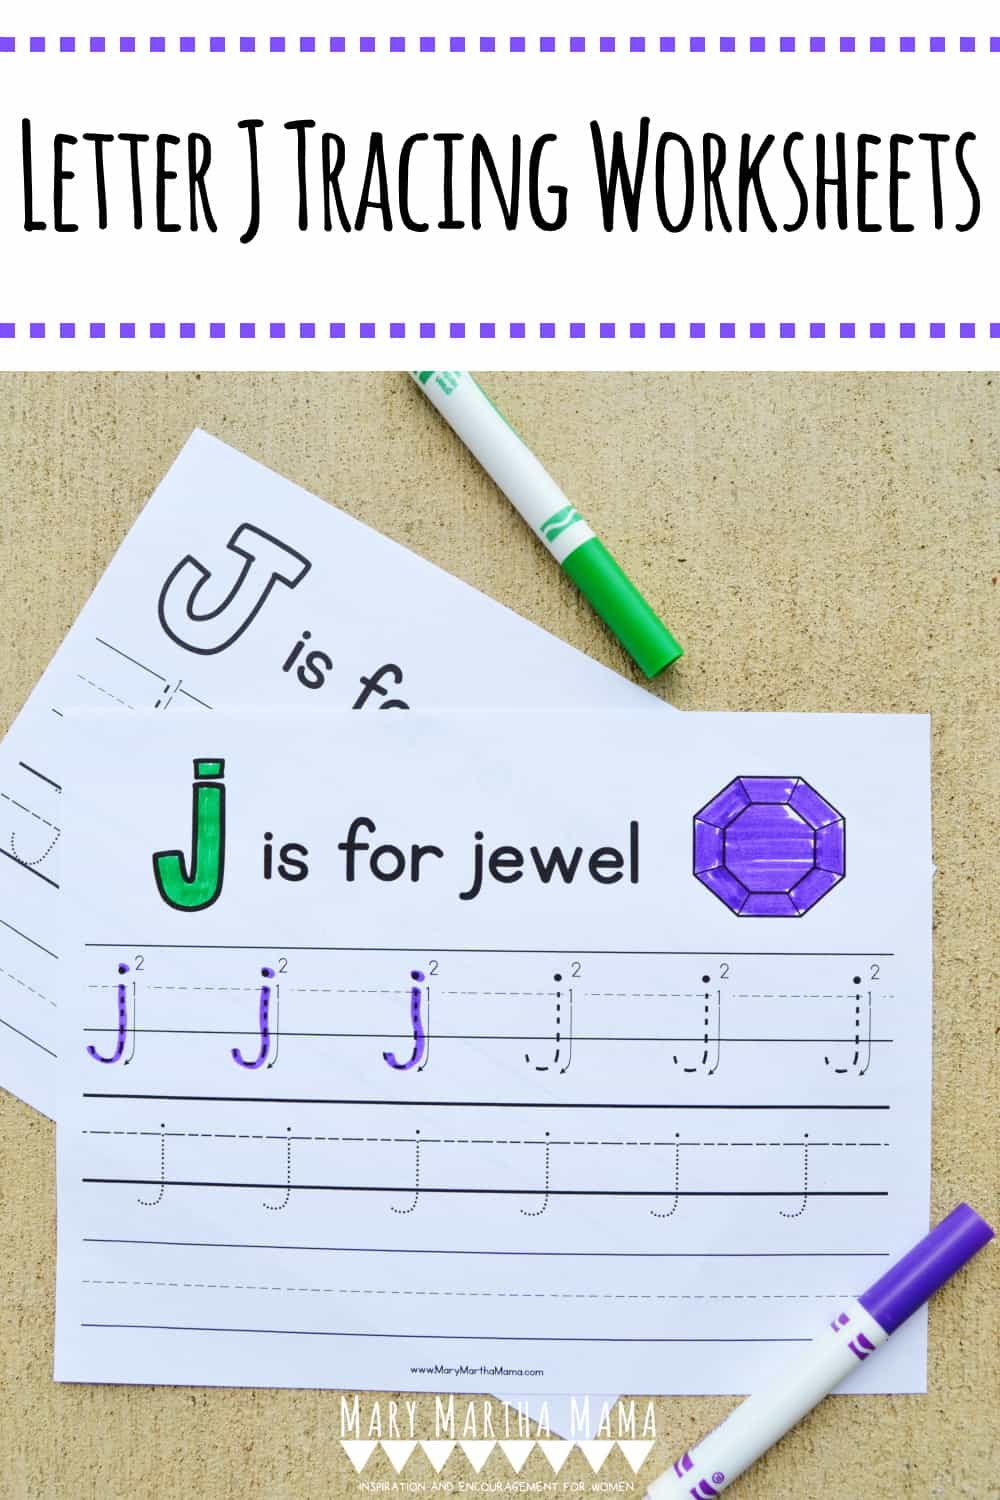 Use these free printable letter J tracing worksheets to help your kiddo learn how to form his or her letters correctly with practice tracing and writing.